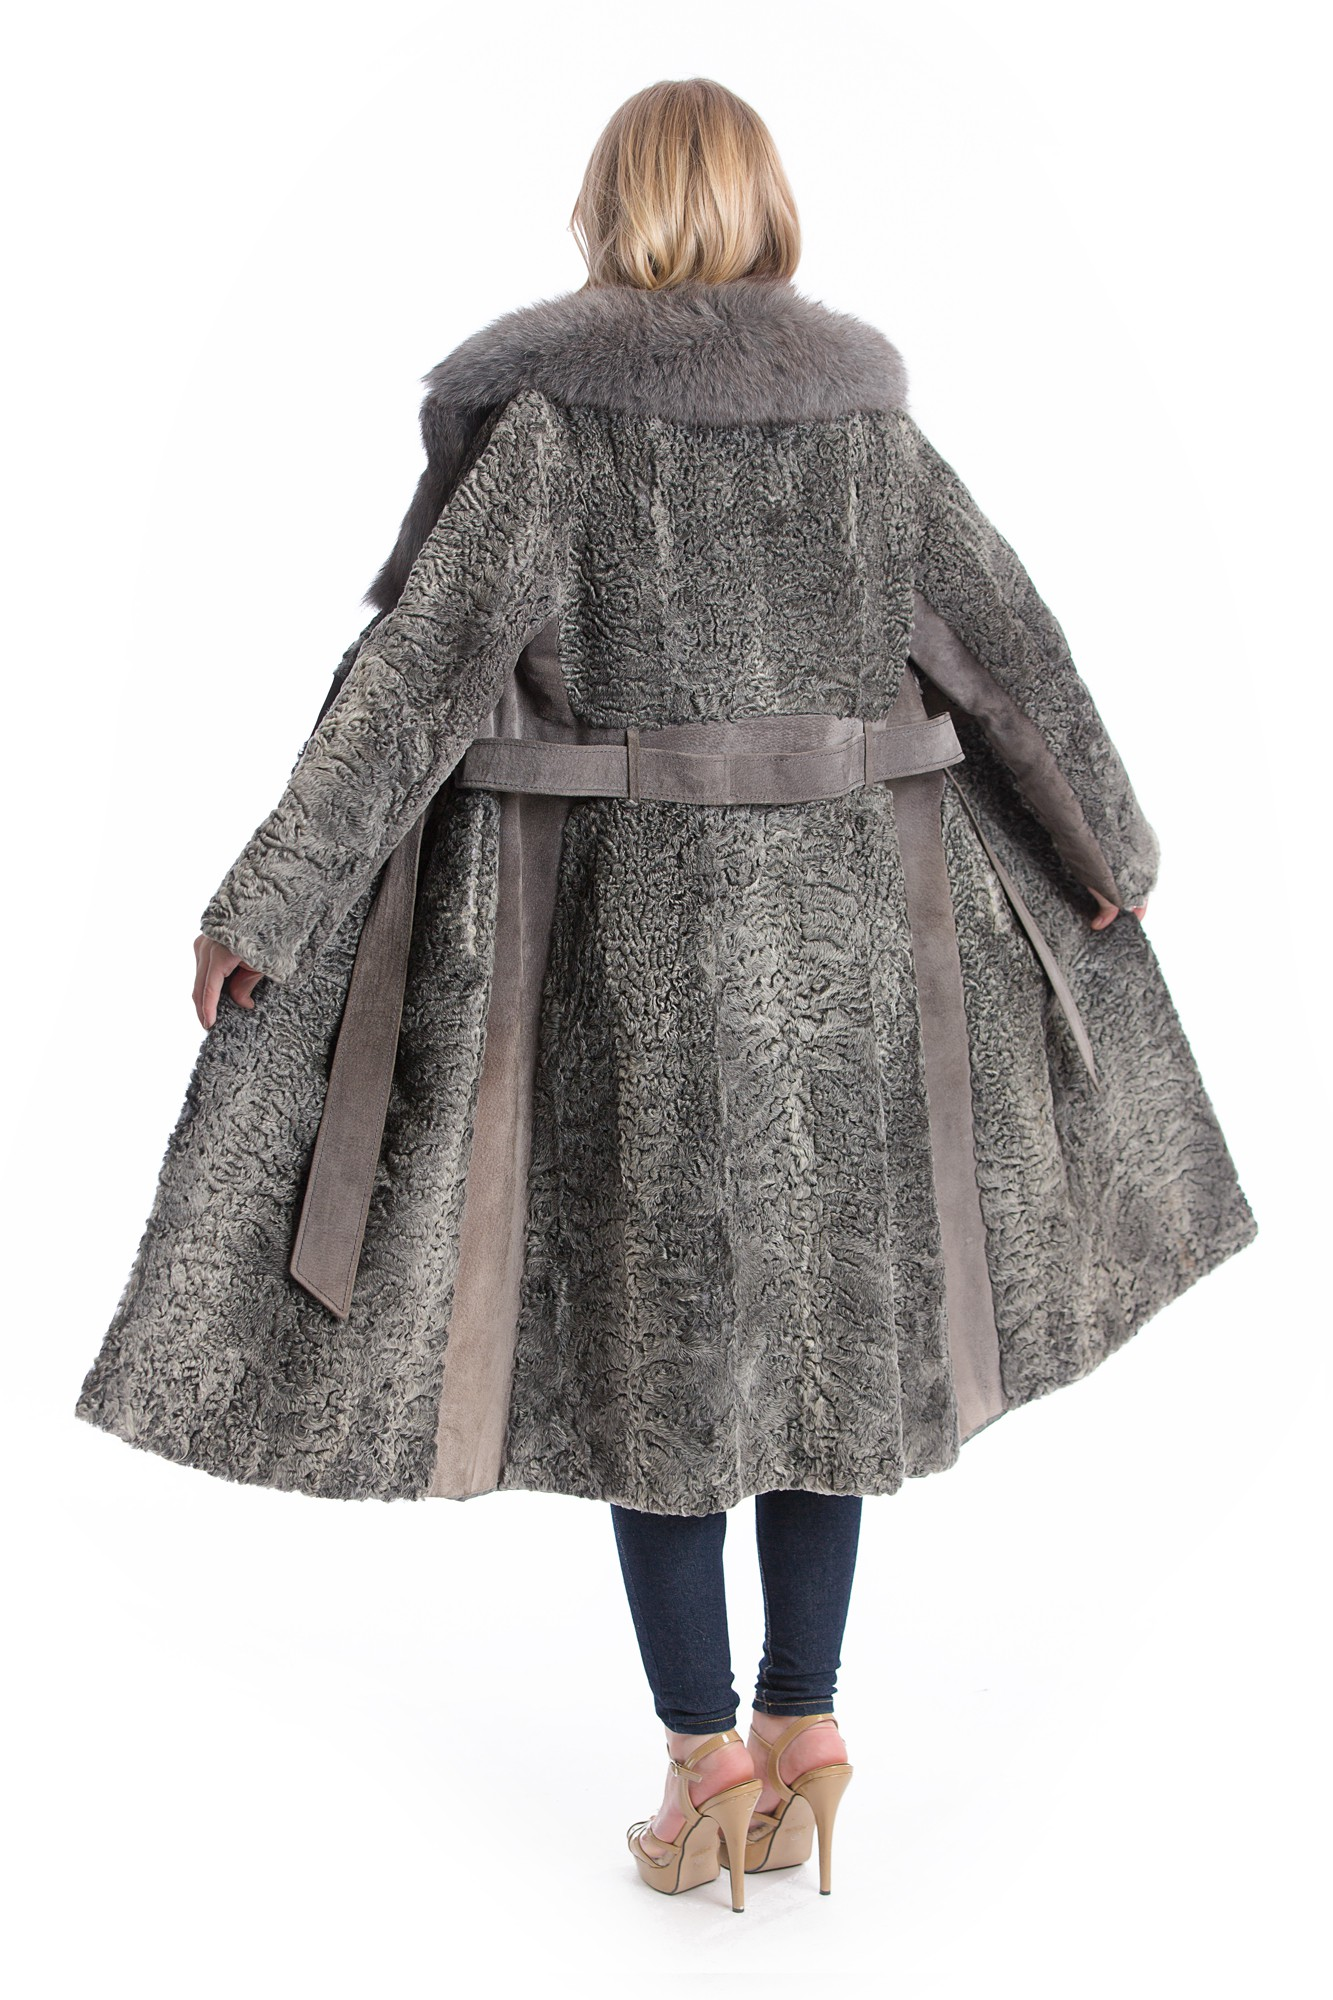 buy persian lamb leather coat gray fashion fox fur collar xxl online at your furs online shop